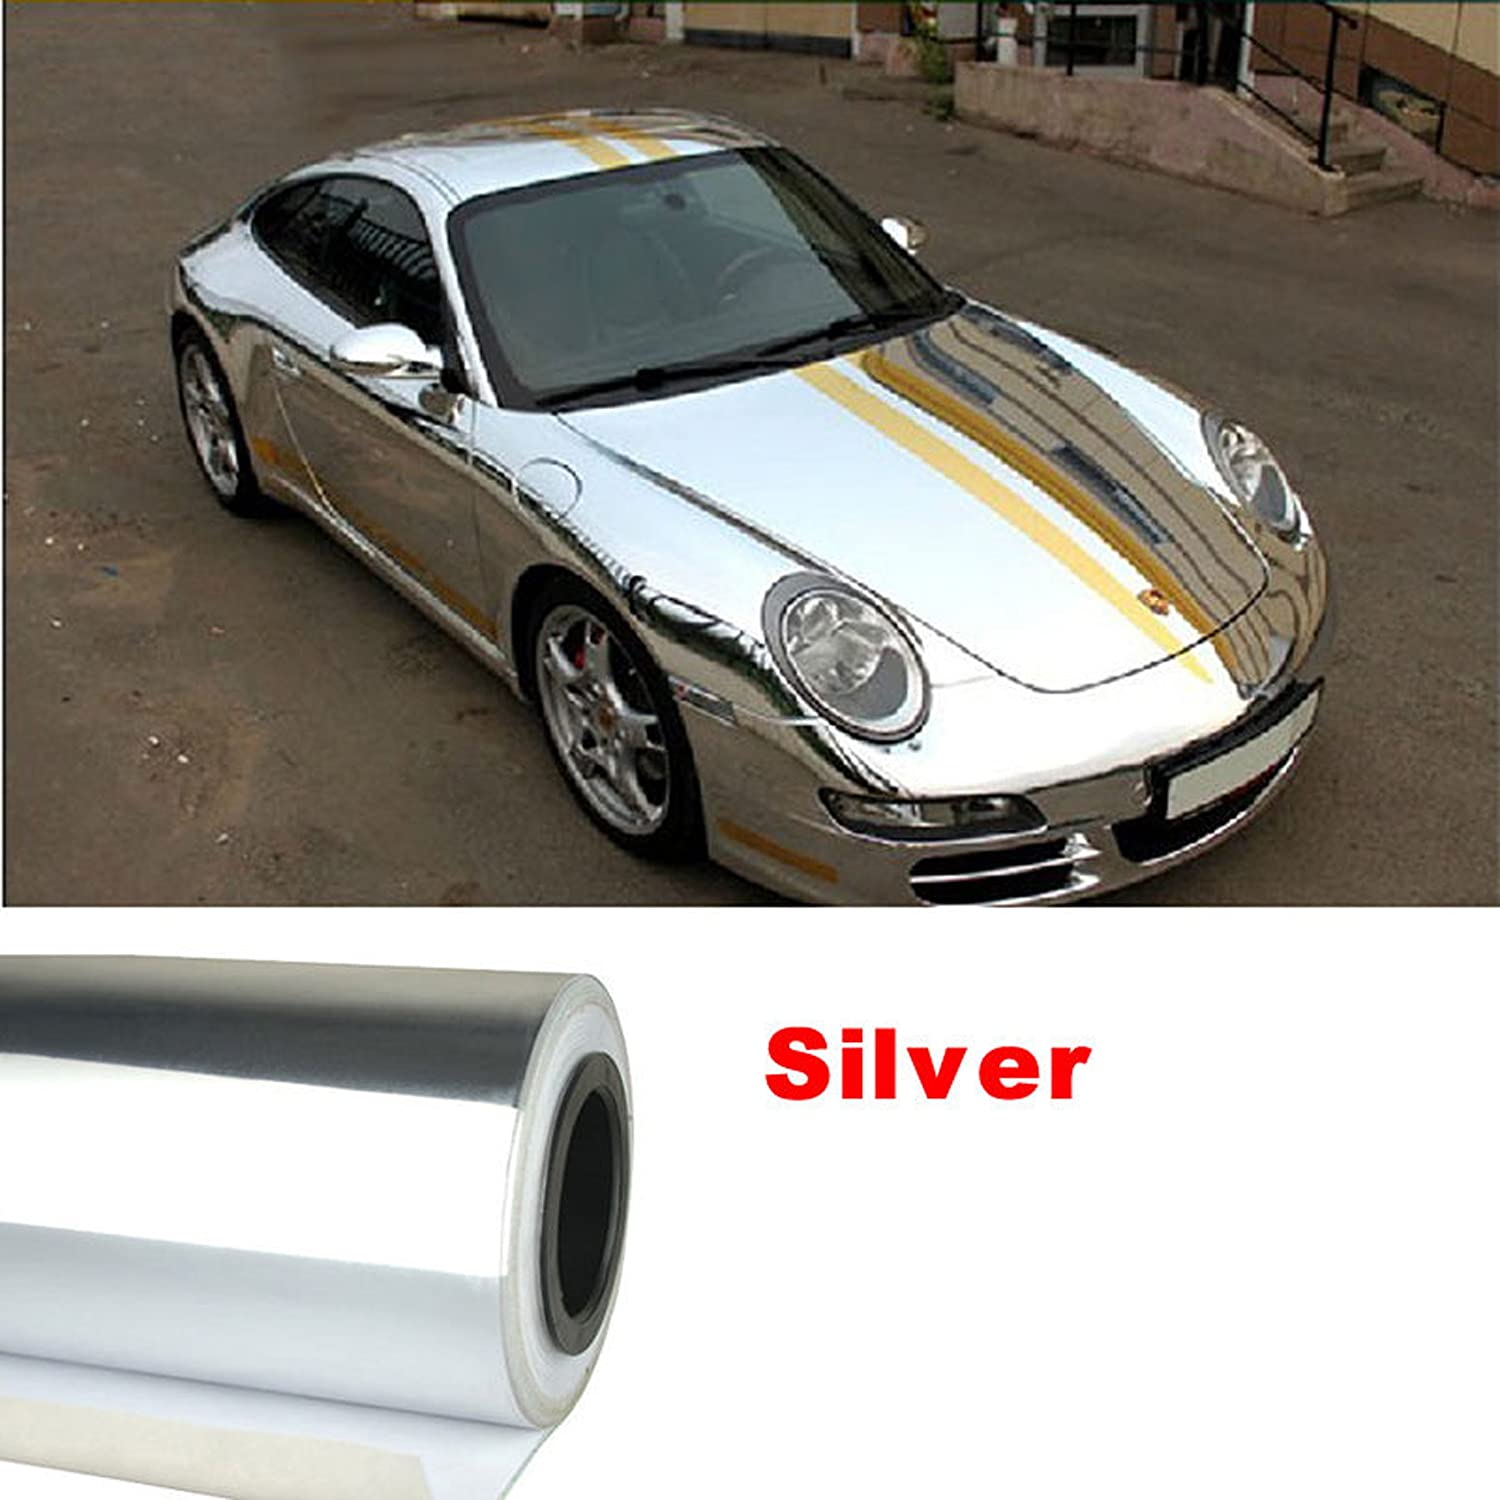 Car mirror sticker design - Amazon Com Nuoya001 New 12 X60 Silver Metallic Car Sticker Wrap Sheet Cover Mirror Chrome Film Decal Automotive